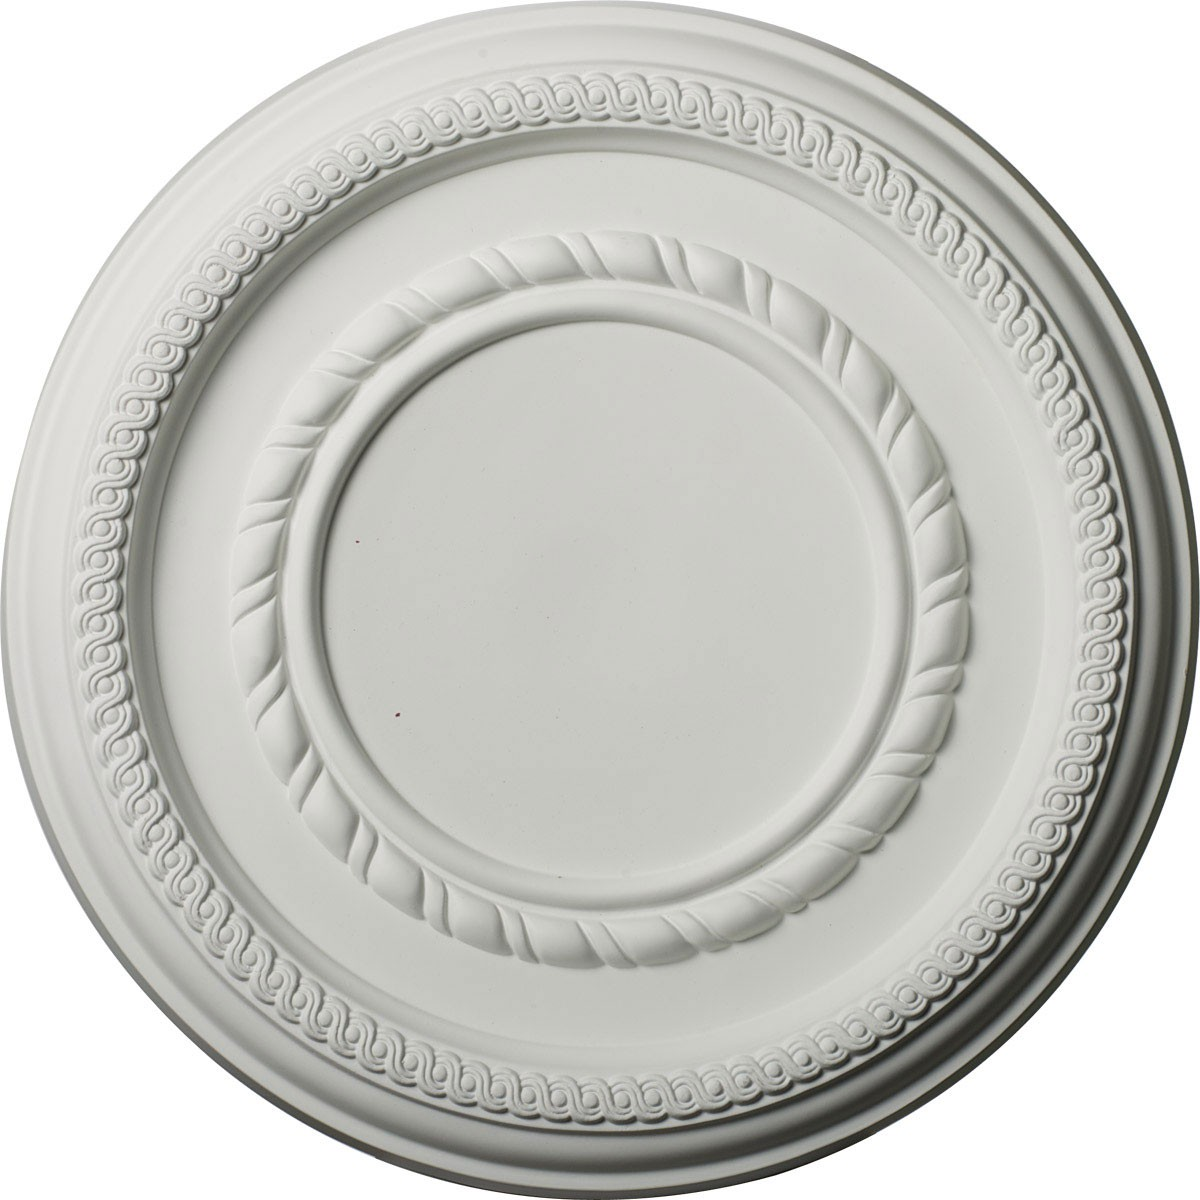 """EM-CM12FE - 12 5/8""""OD x 1 1/8""""P Federal Roped Small Ceiling Medallion (Fits Canopies up to 6"""")"""